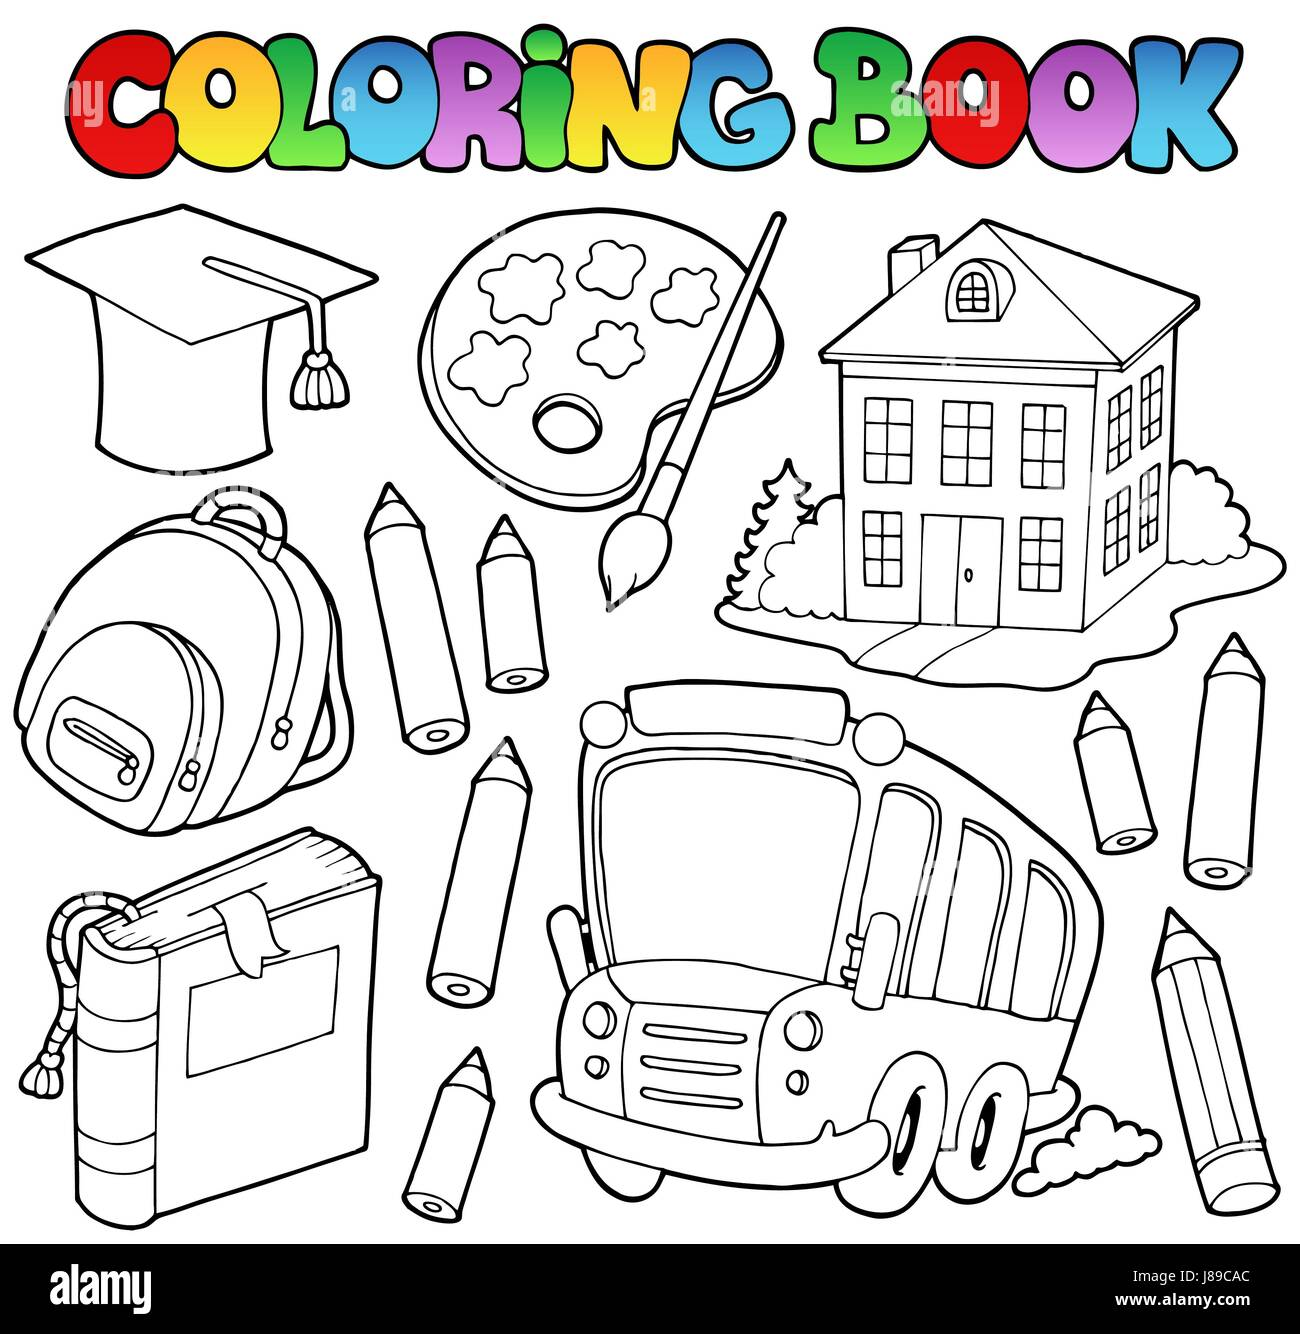 Education Colour Paint Painted Colouring Book School Stock Photo Alamy